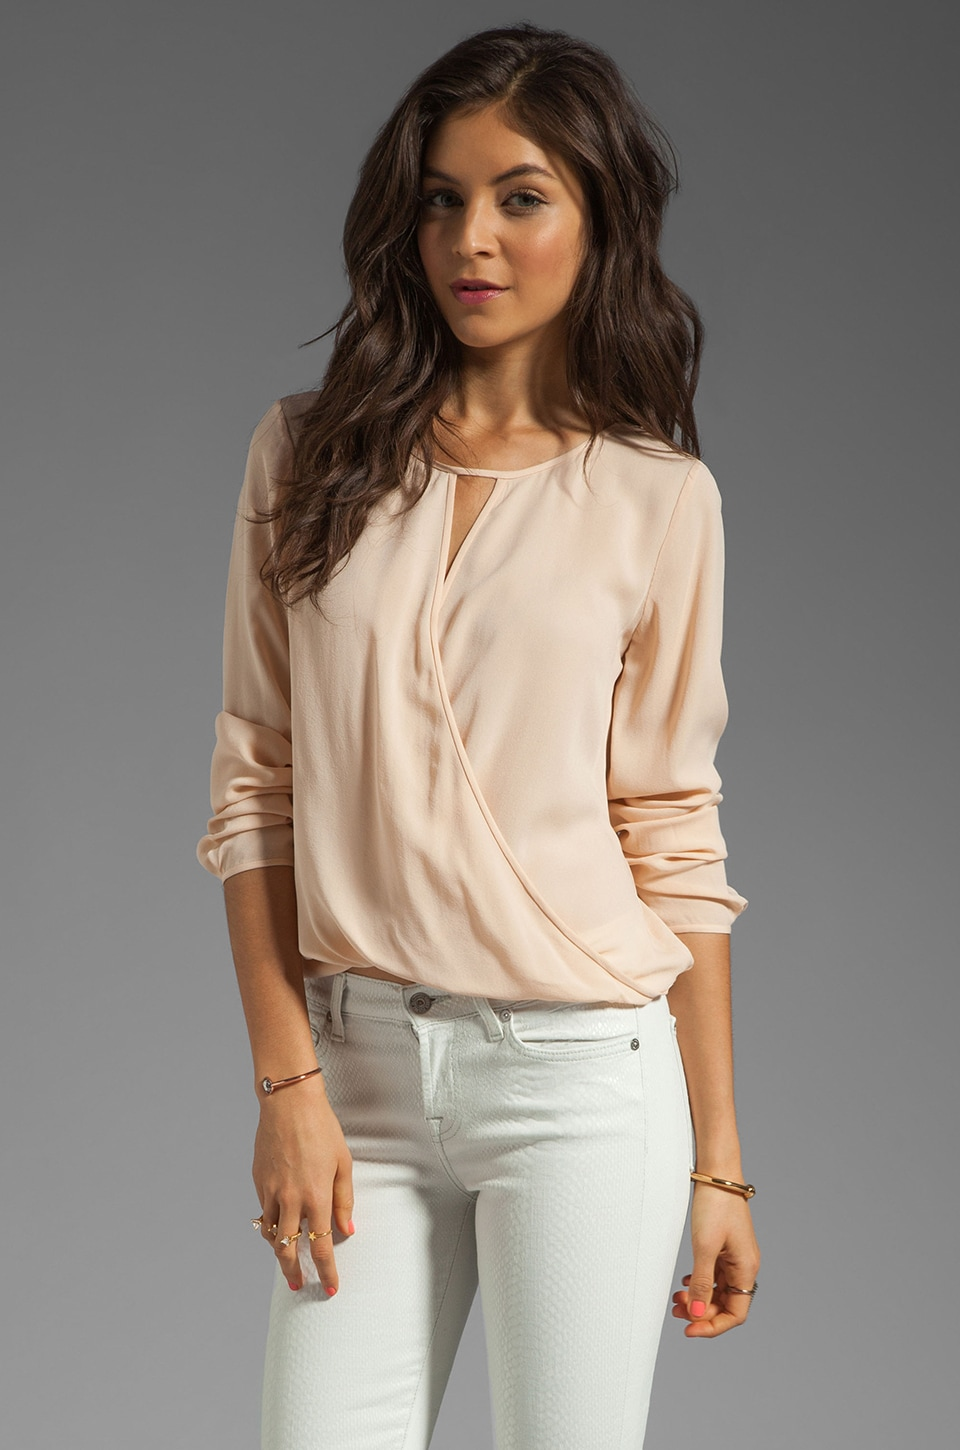 Theory Saleya Aija Silk Crepe Blouse in Peach Nude